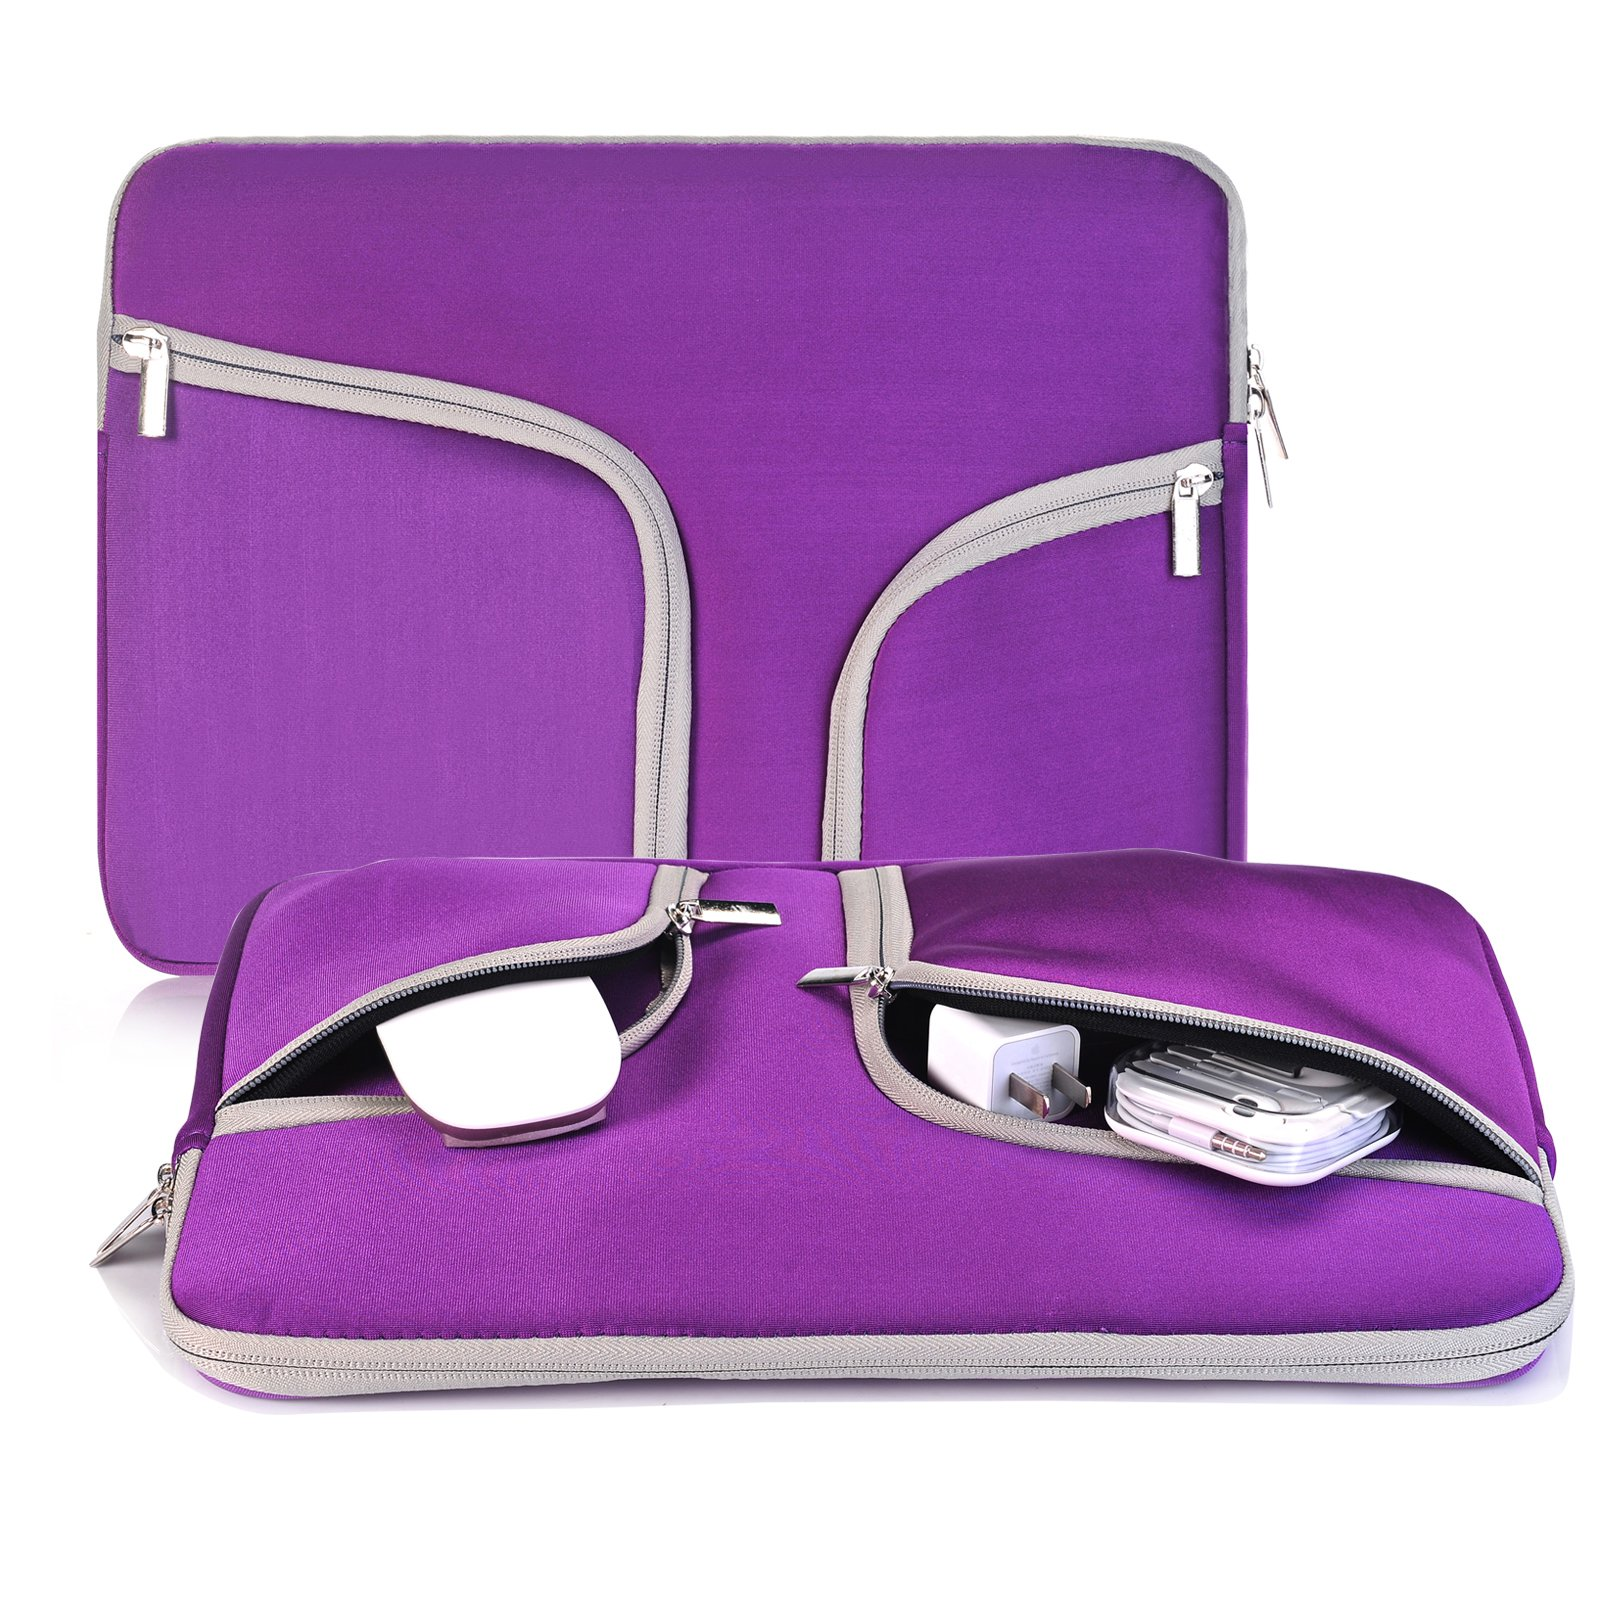 egiant Laptop Sleeve 13.3 Inch,Water-Resistant Protective Notebook Case Bag Compatible Mac Air 13,Mac Pro 13 Retina,Surface Book,12.9 iPad Pro,Chromebook 13,Computers Notebook Carrying Case-Purple